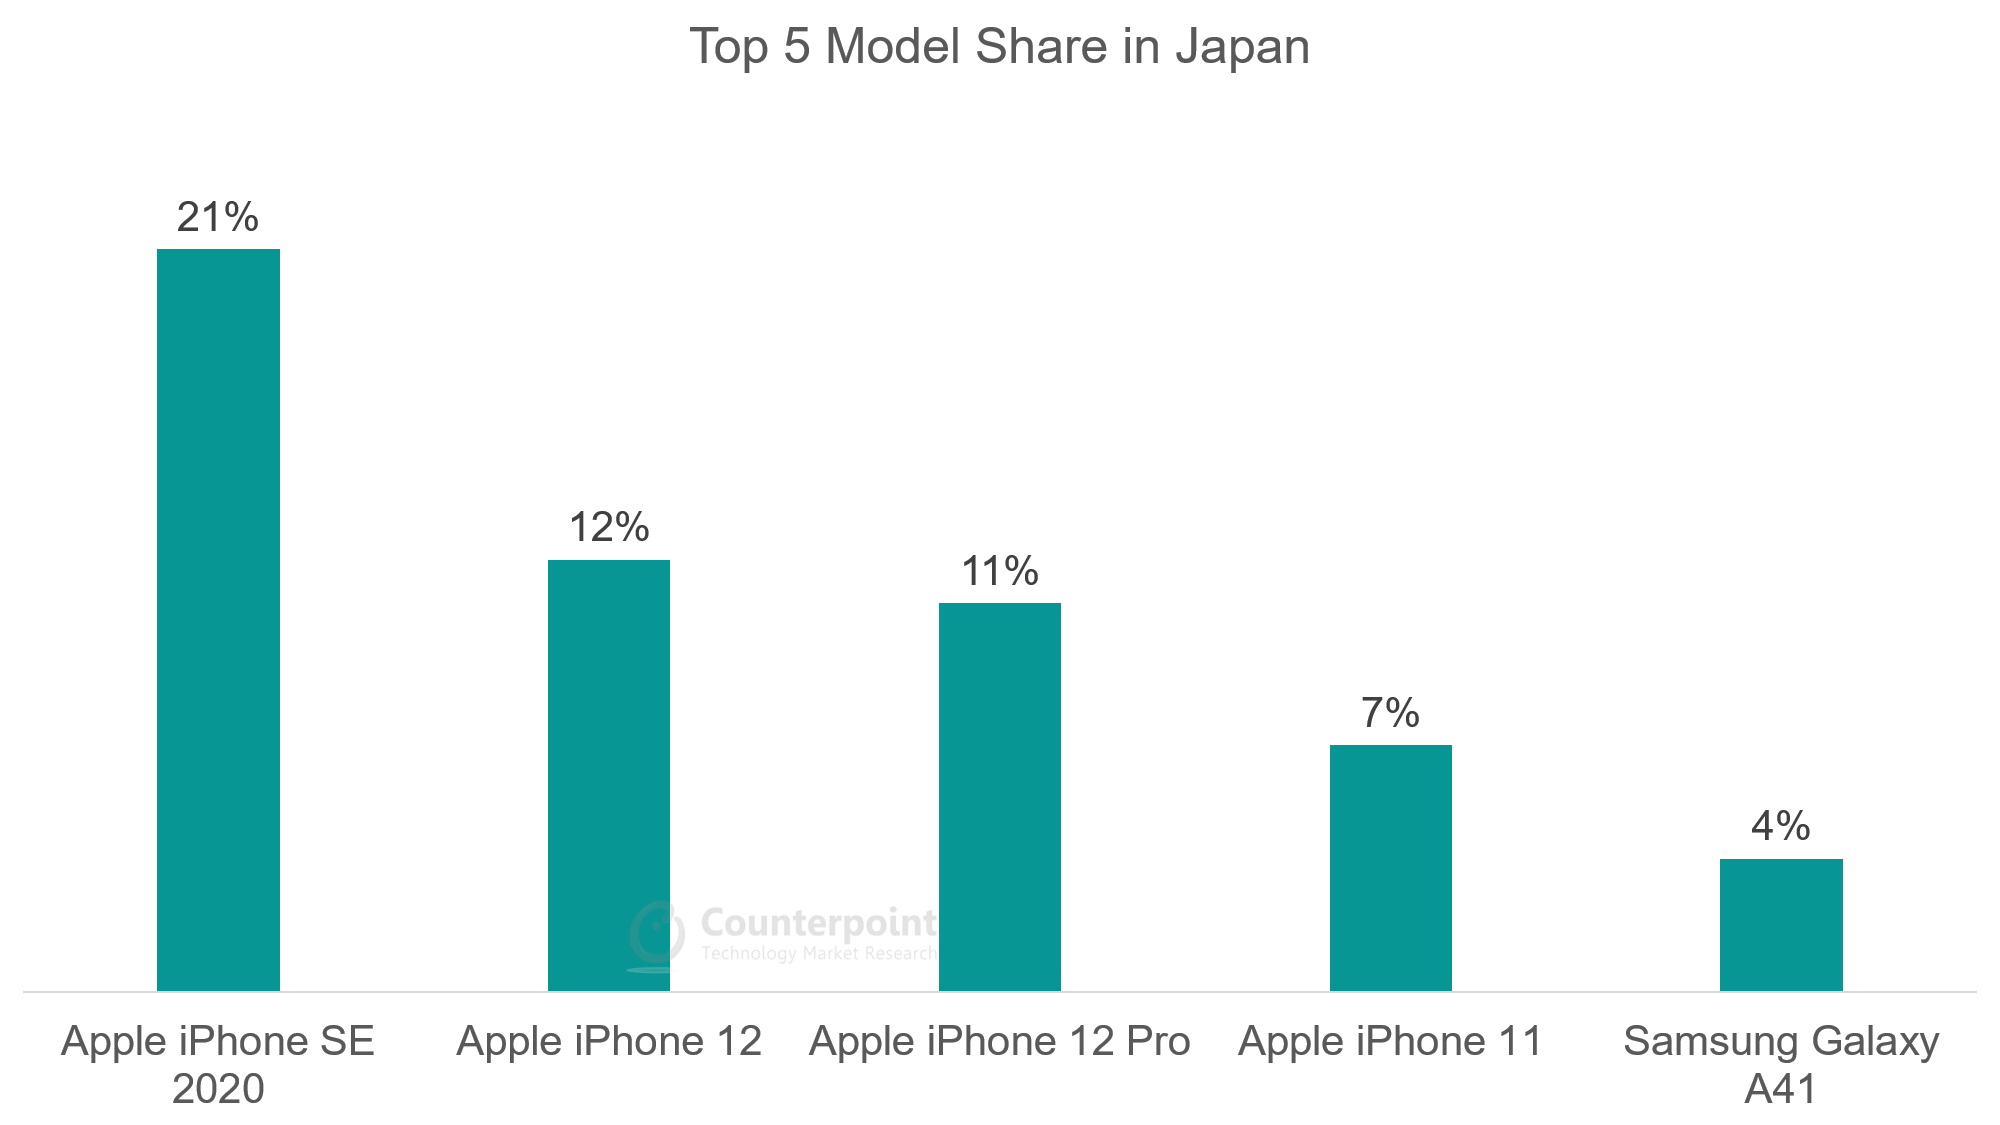 Top 5 Model Share in Japan - Oct 2020